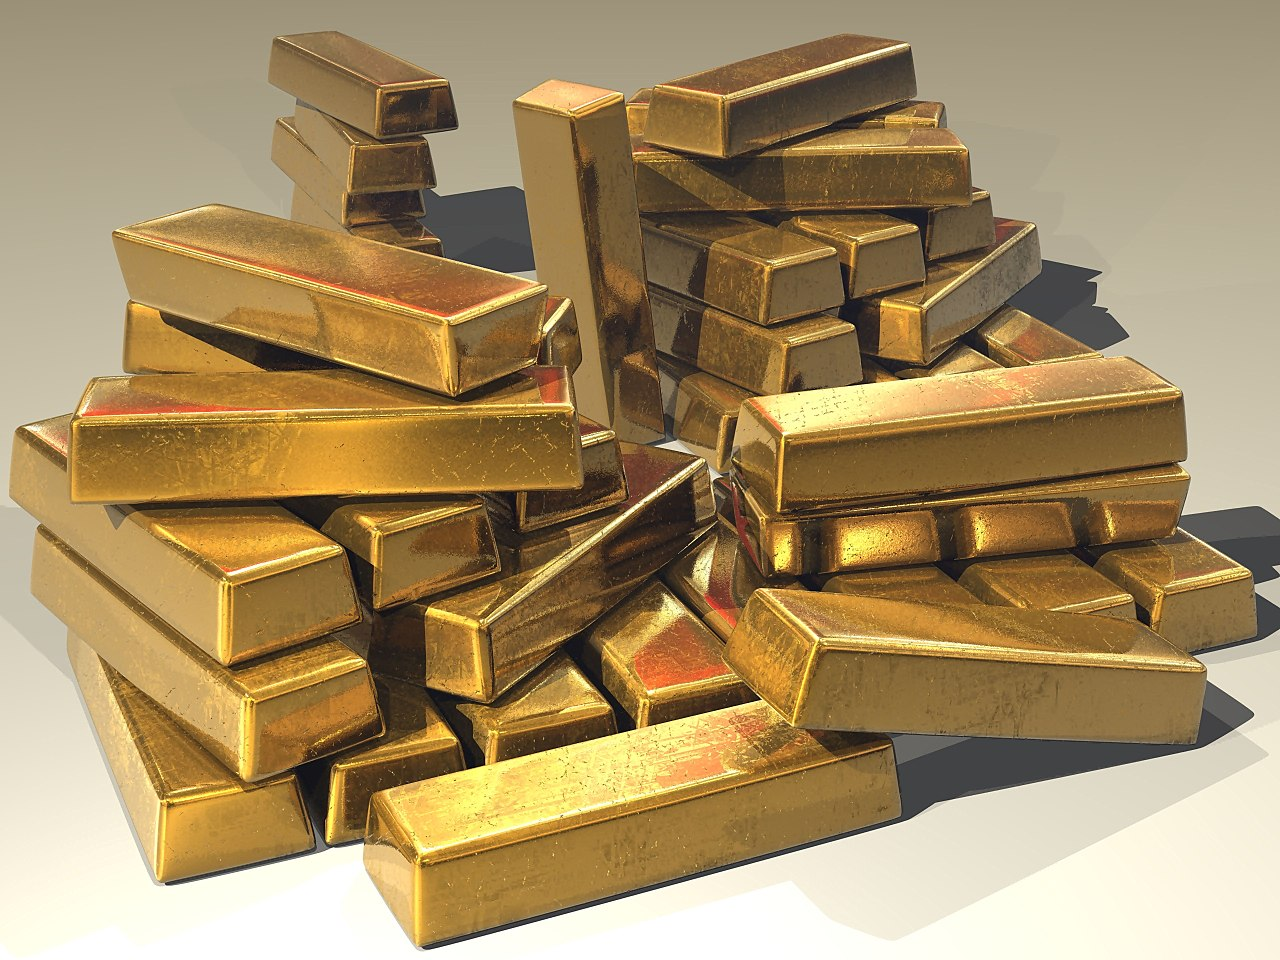 Gold bars from Wikimedia Commons